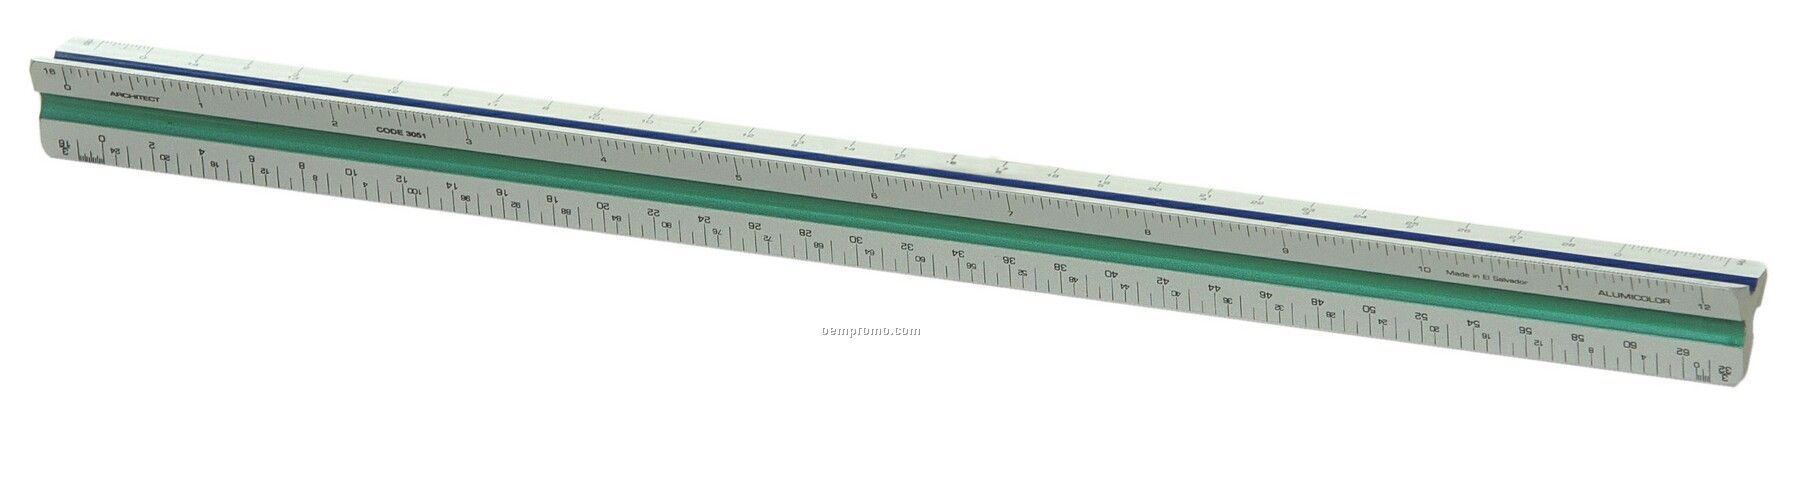 drafting instruments,china wholesale drafting instruments